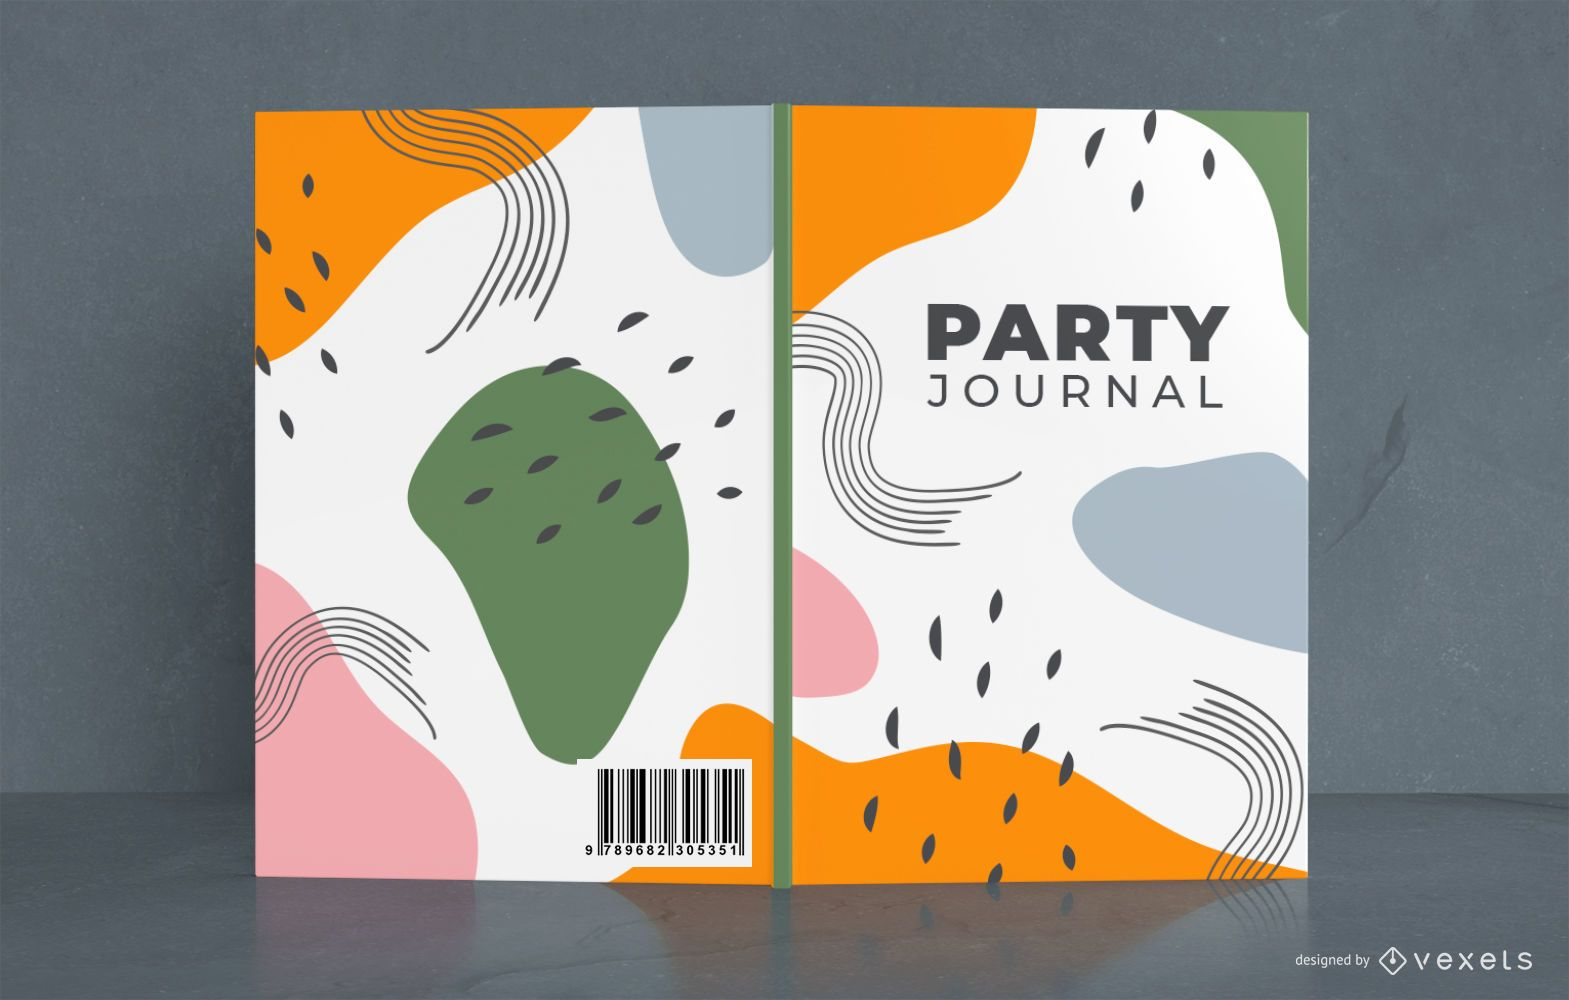 Abstract Party Journal Cover Design